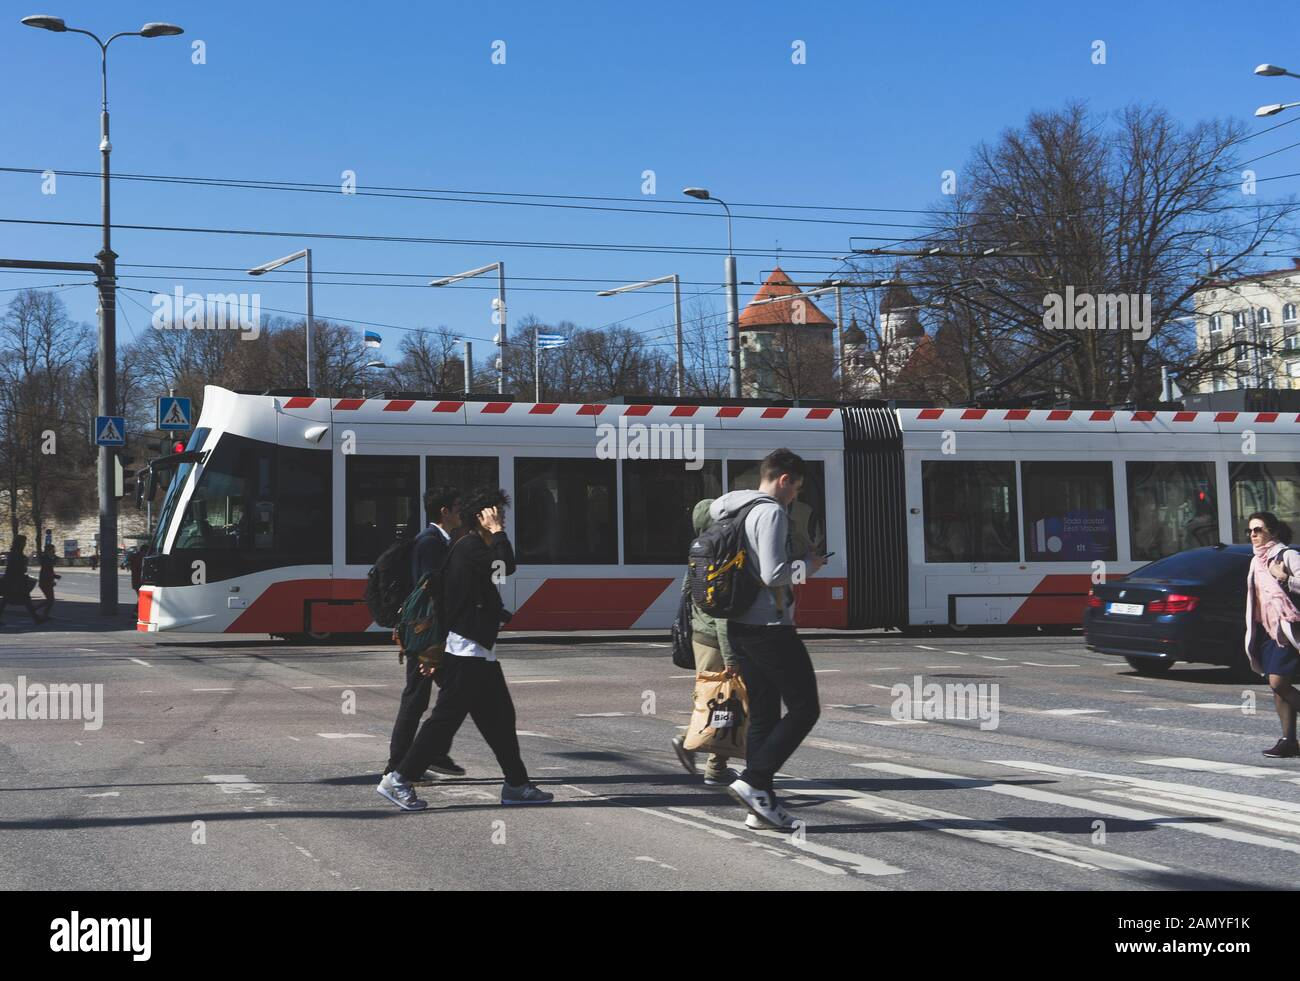 20 April 2019 Tallinn, Estonia. Low-floor tram on one of the streets of the city. Stock Photo